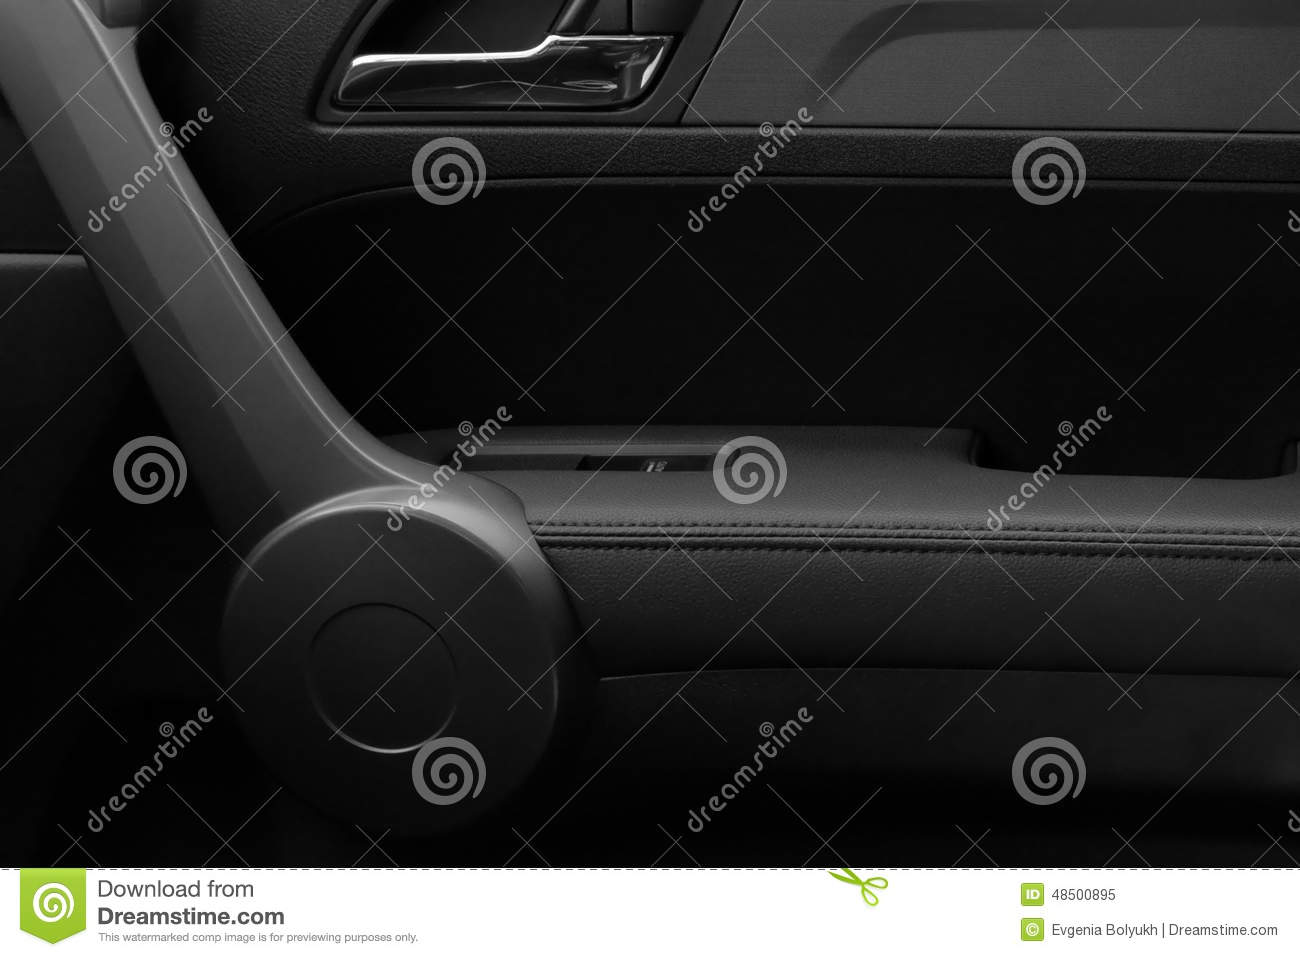 car interior details royalty free stock photography 71466329. Black Bedroom Furniture Sets. Home Design Ideas